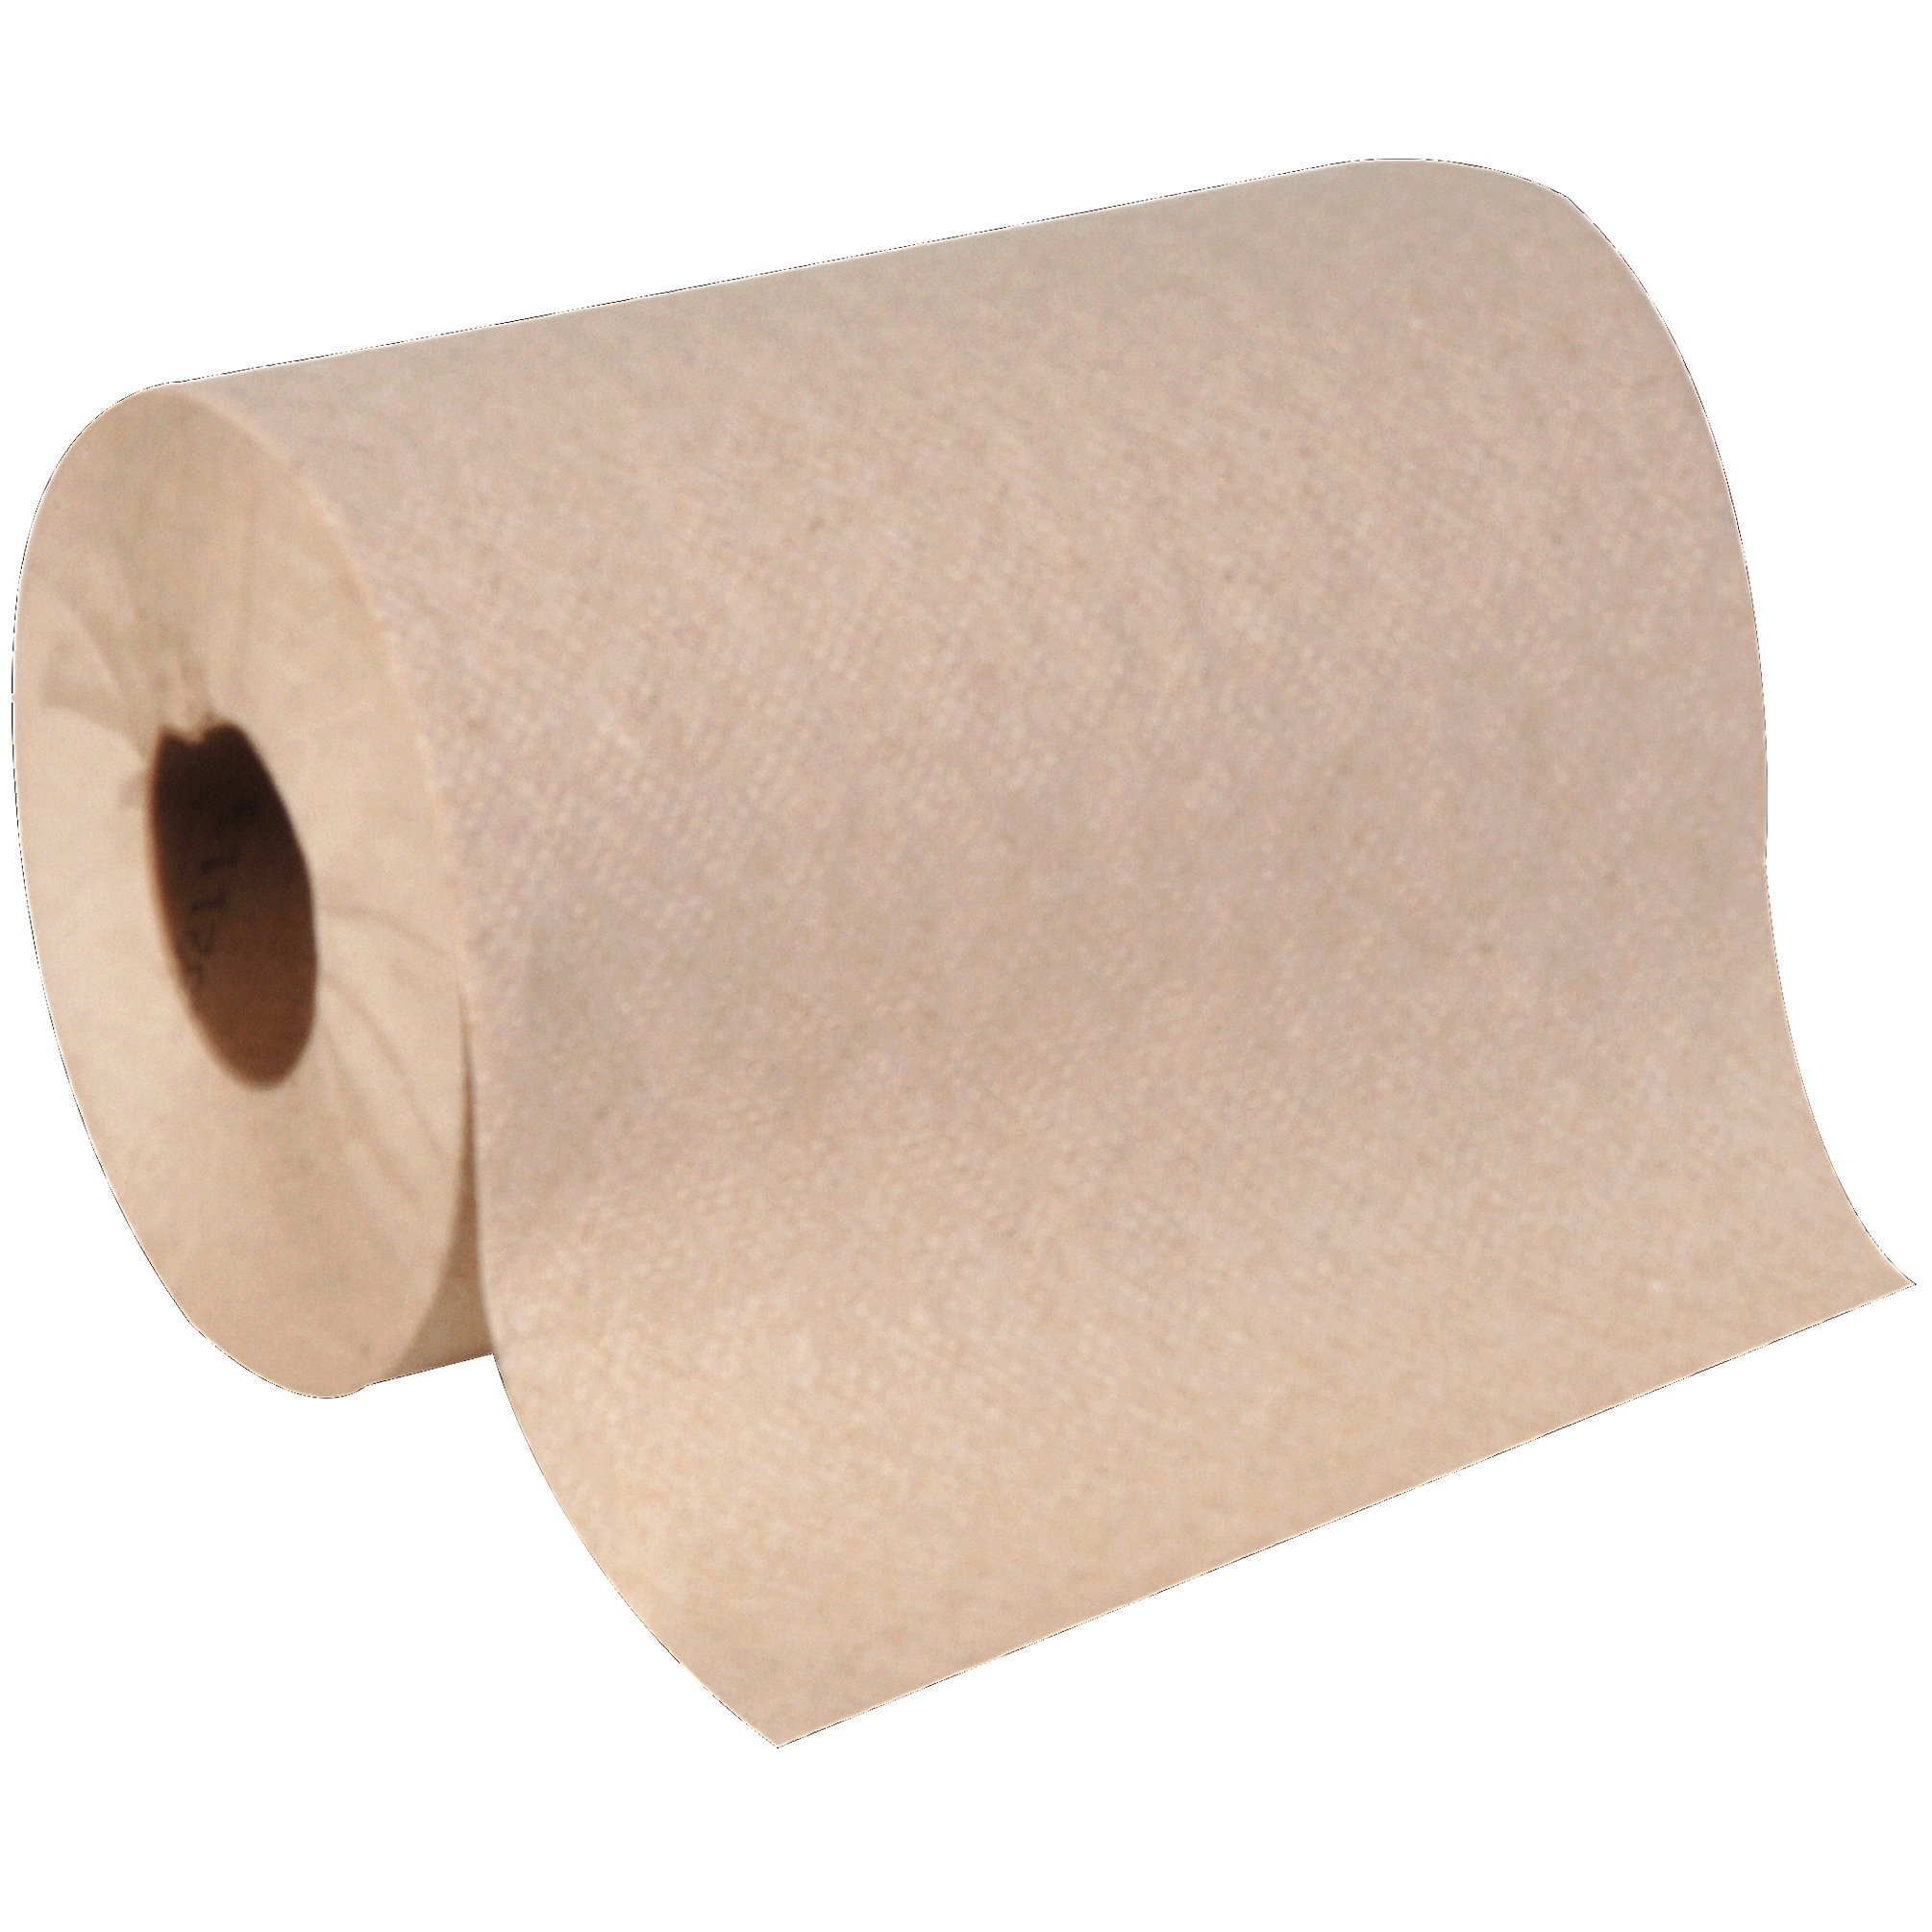 Georgia-Pacific Envision 26008 Brown Hardwound Roll Paper Towel, 350' Length x 7.875'' Width, 2'' Core Size (Case of 12 Rolls)